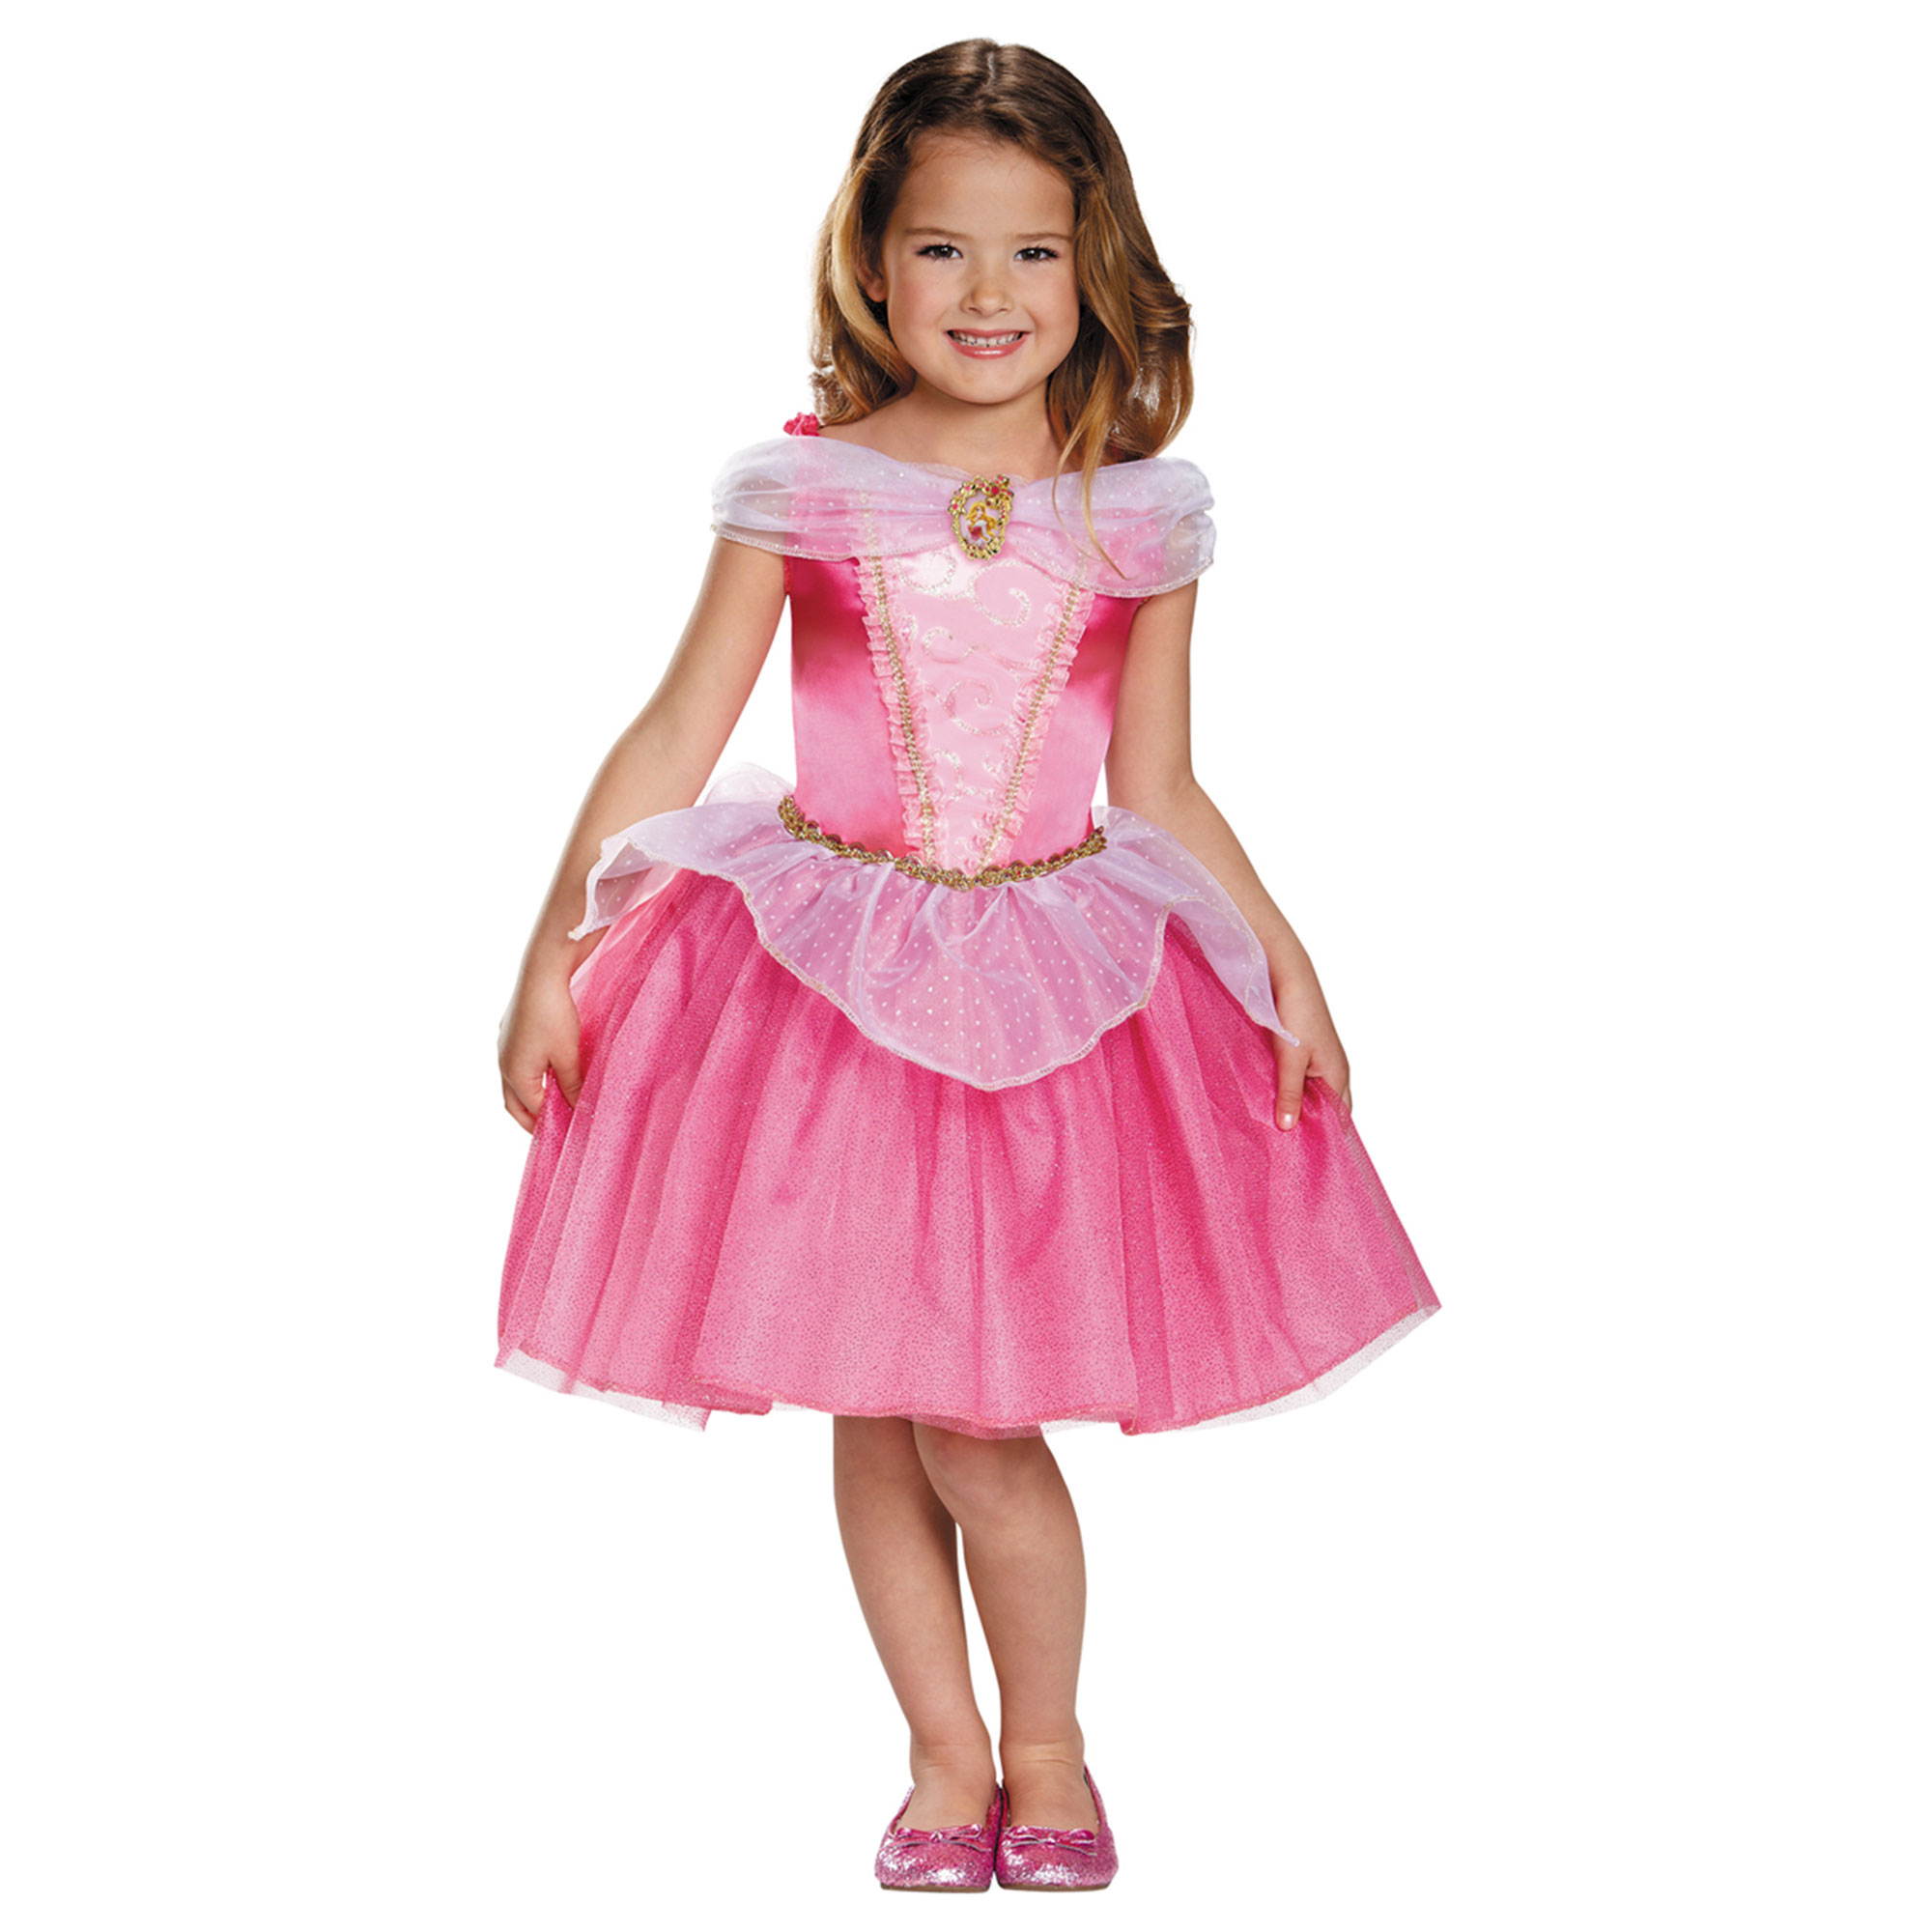 Disguise Aurora Classic Disney Princess Sleeping Beauty Costume, 4-6, Style DG98472L